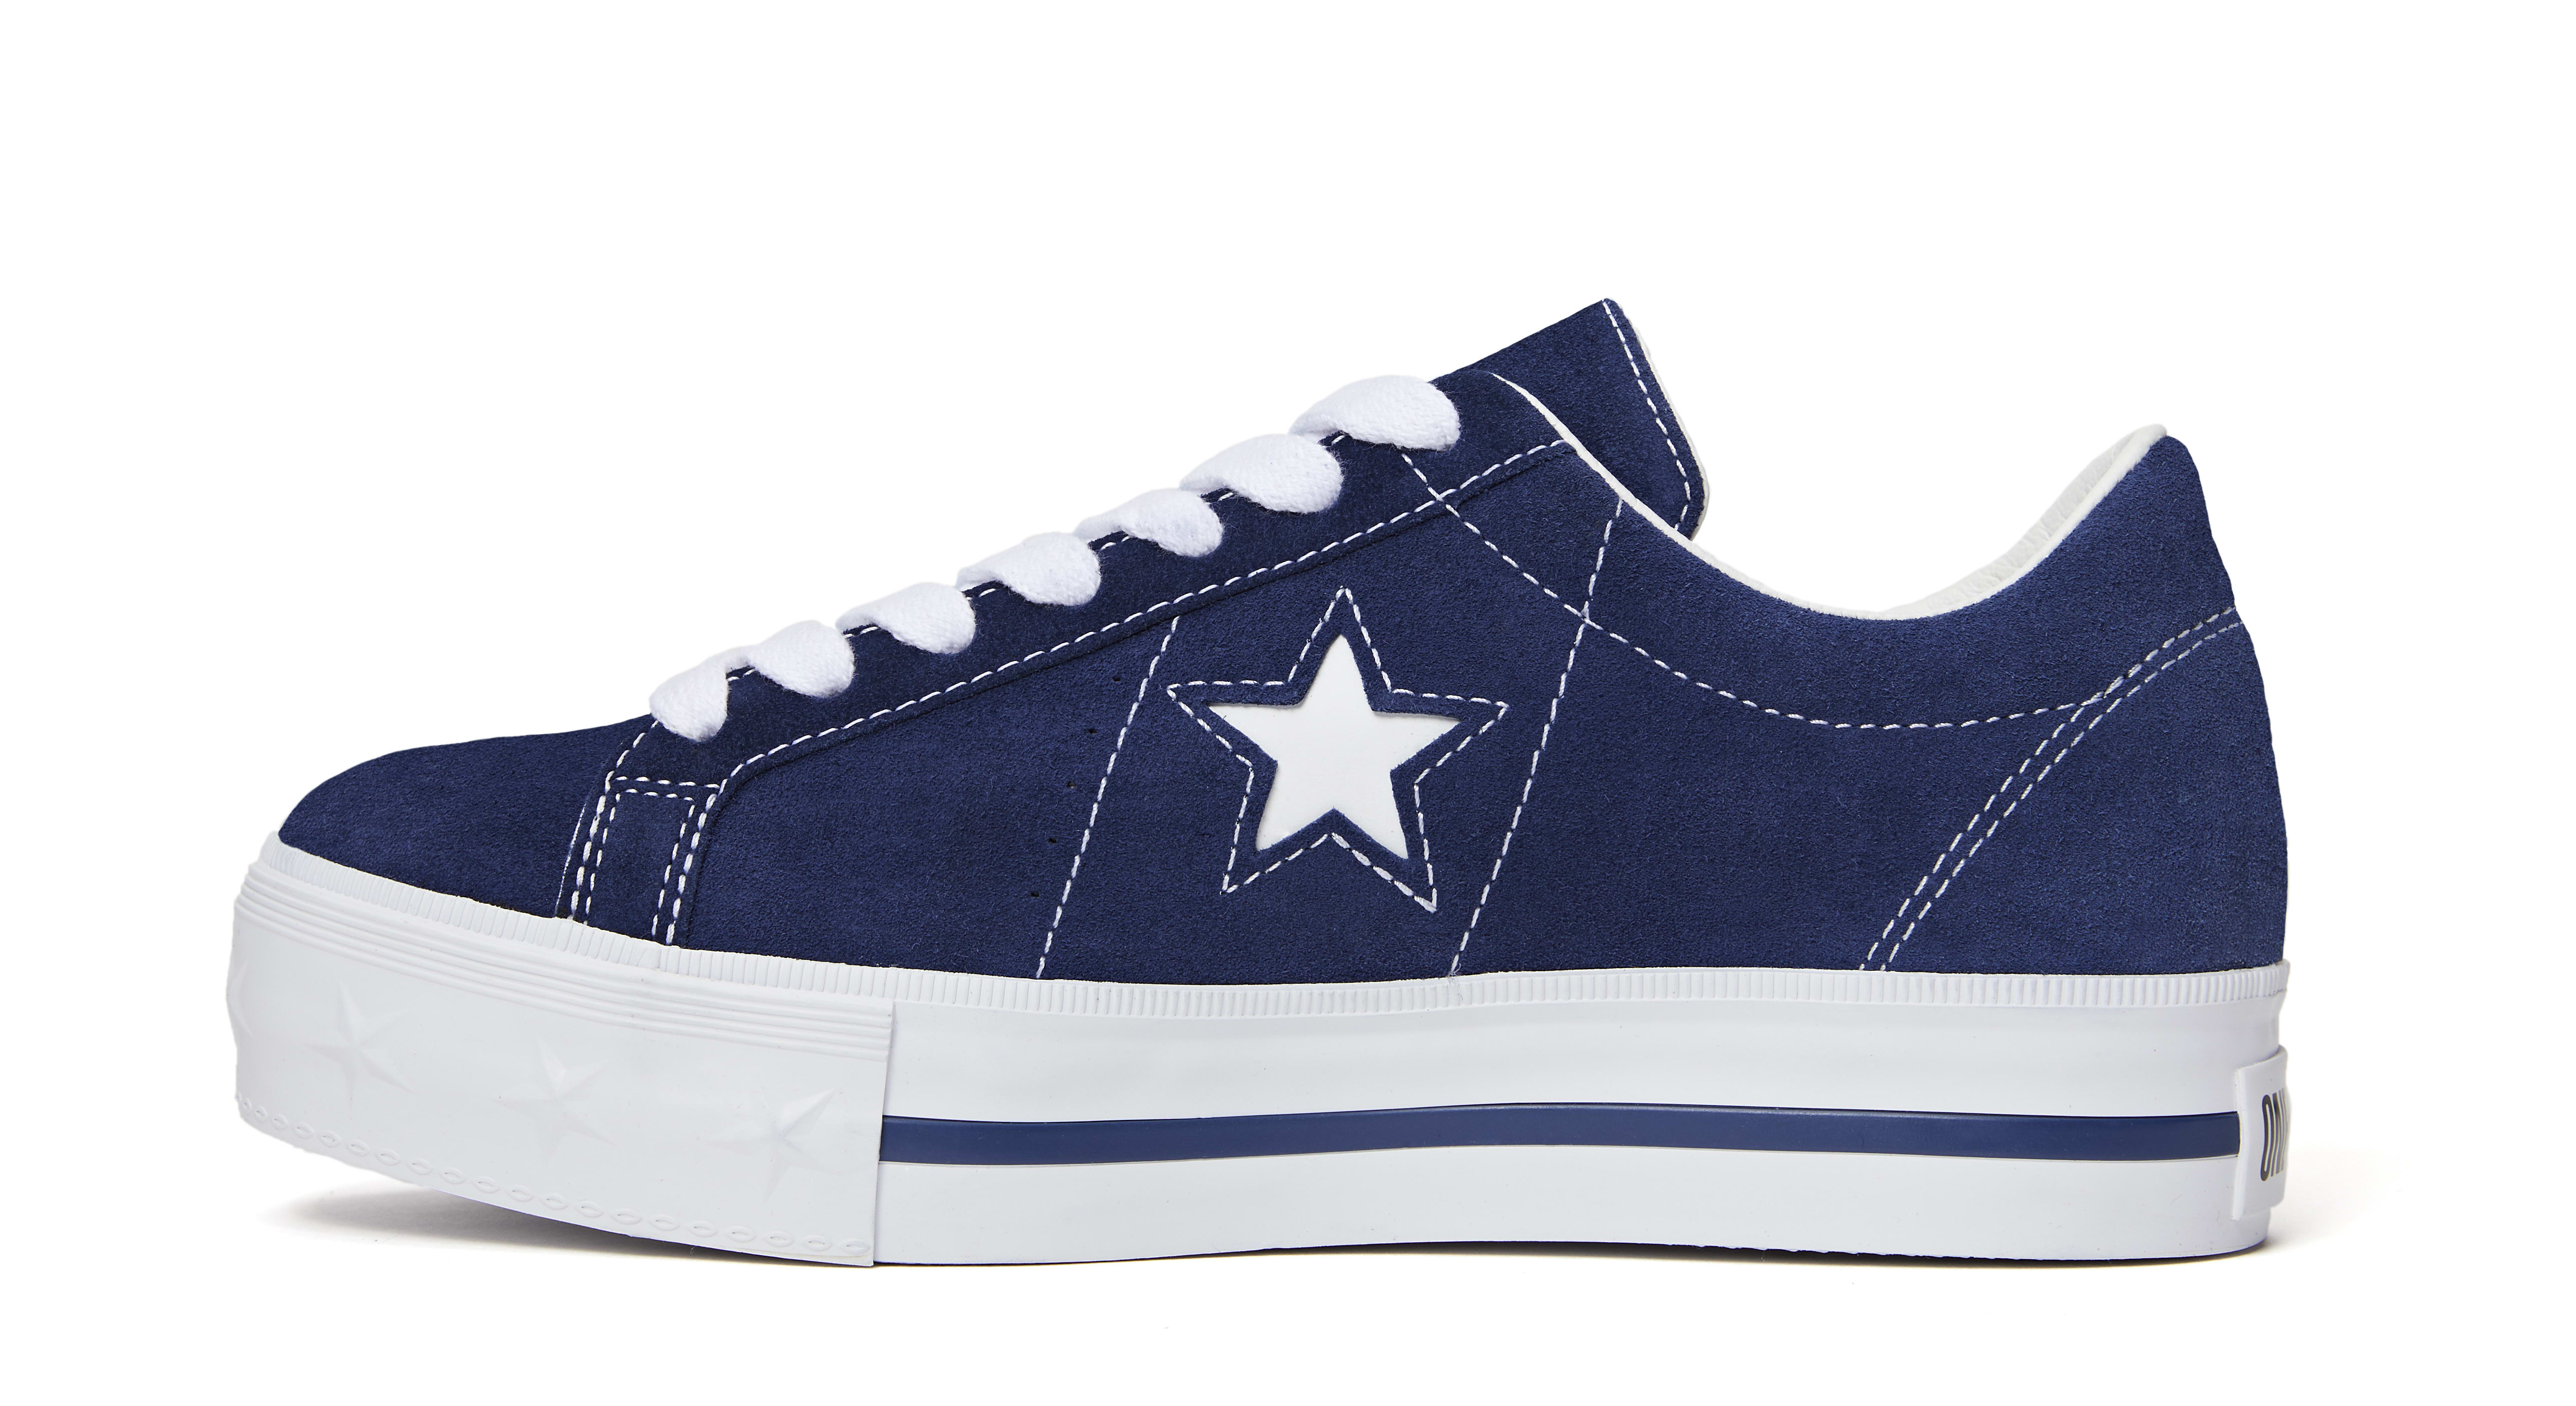 Mademe x Converse One Star 'Medieval Blue' (Medial)